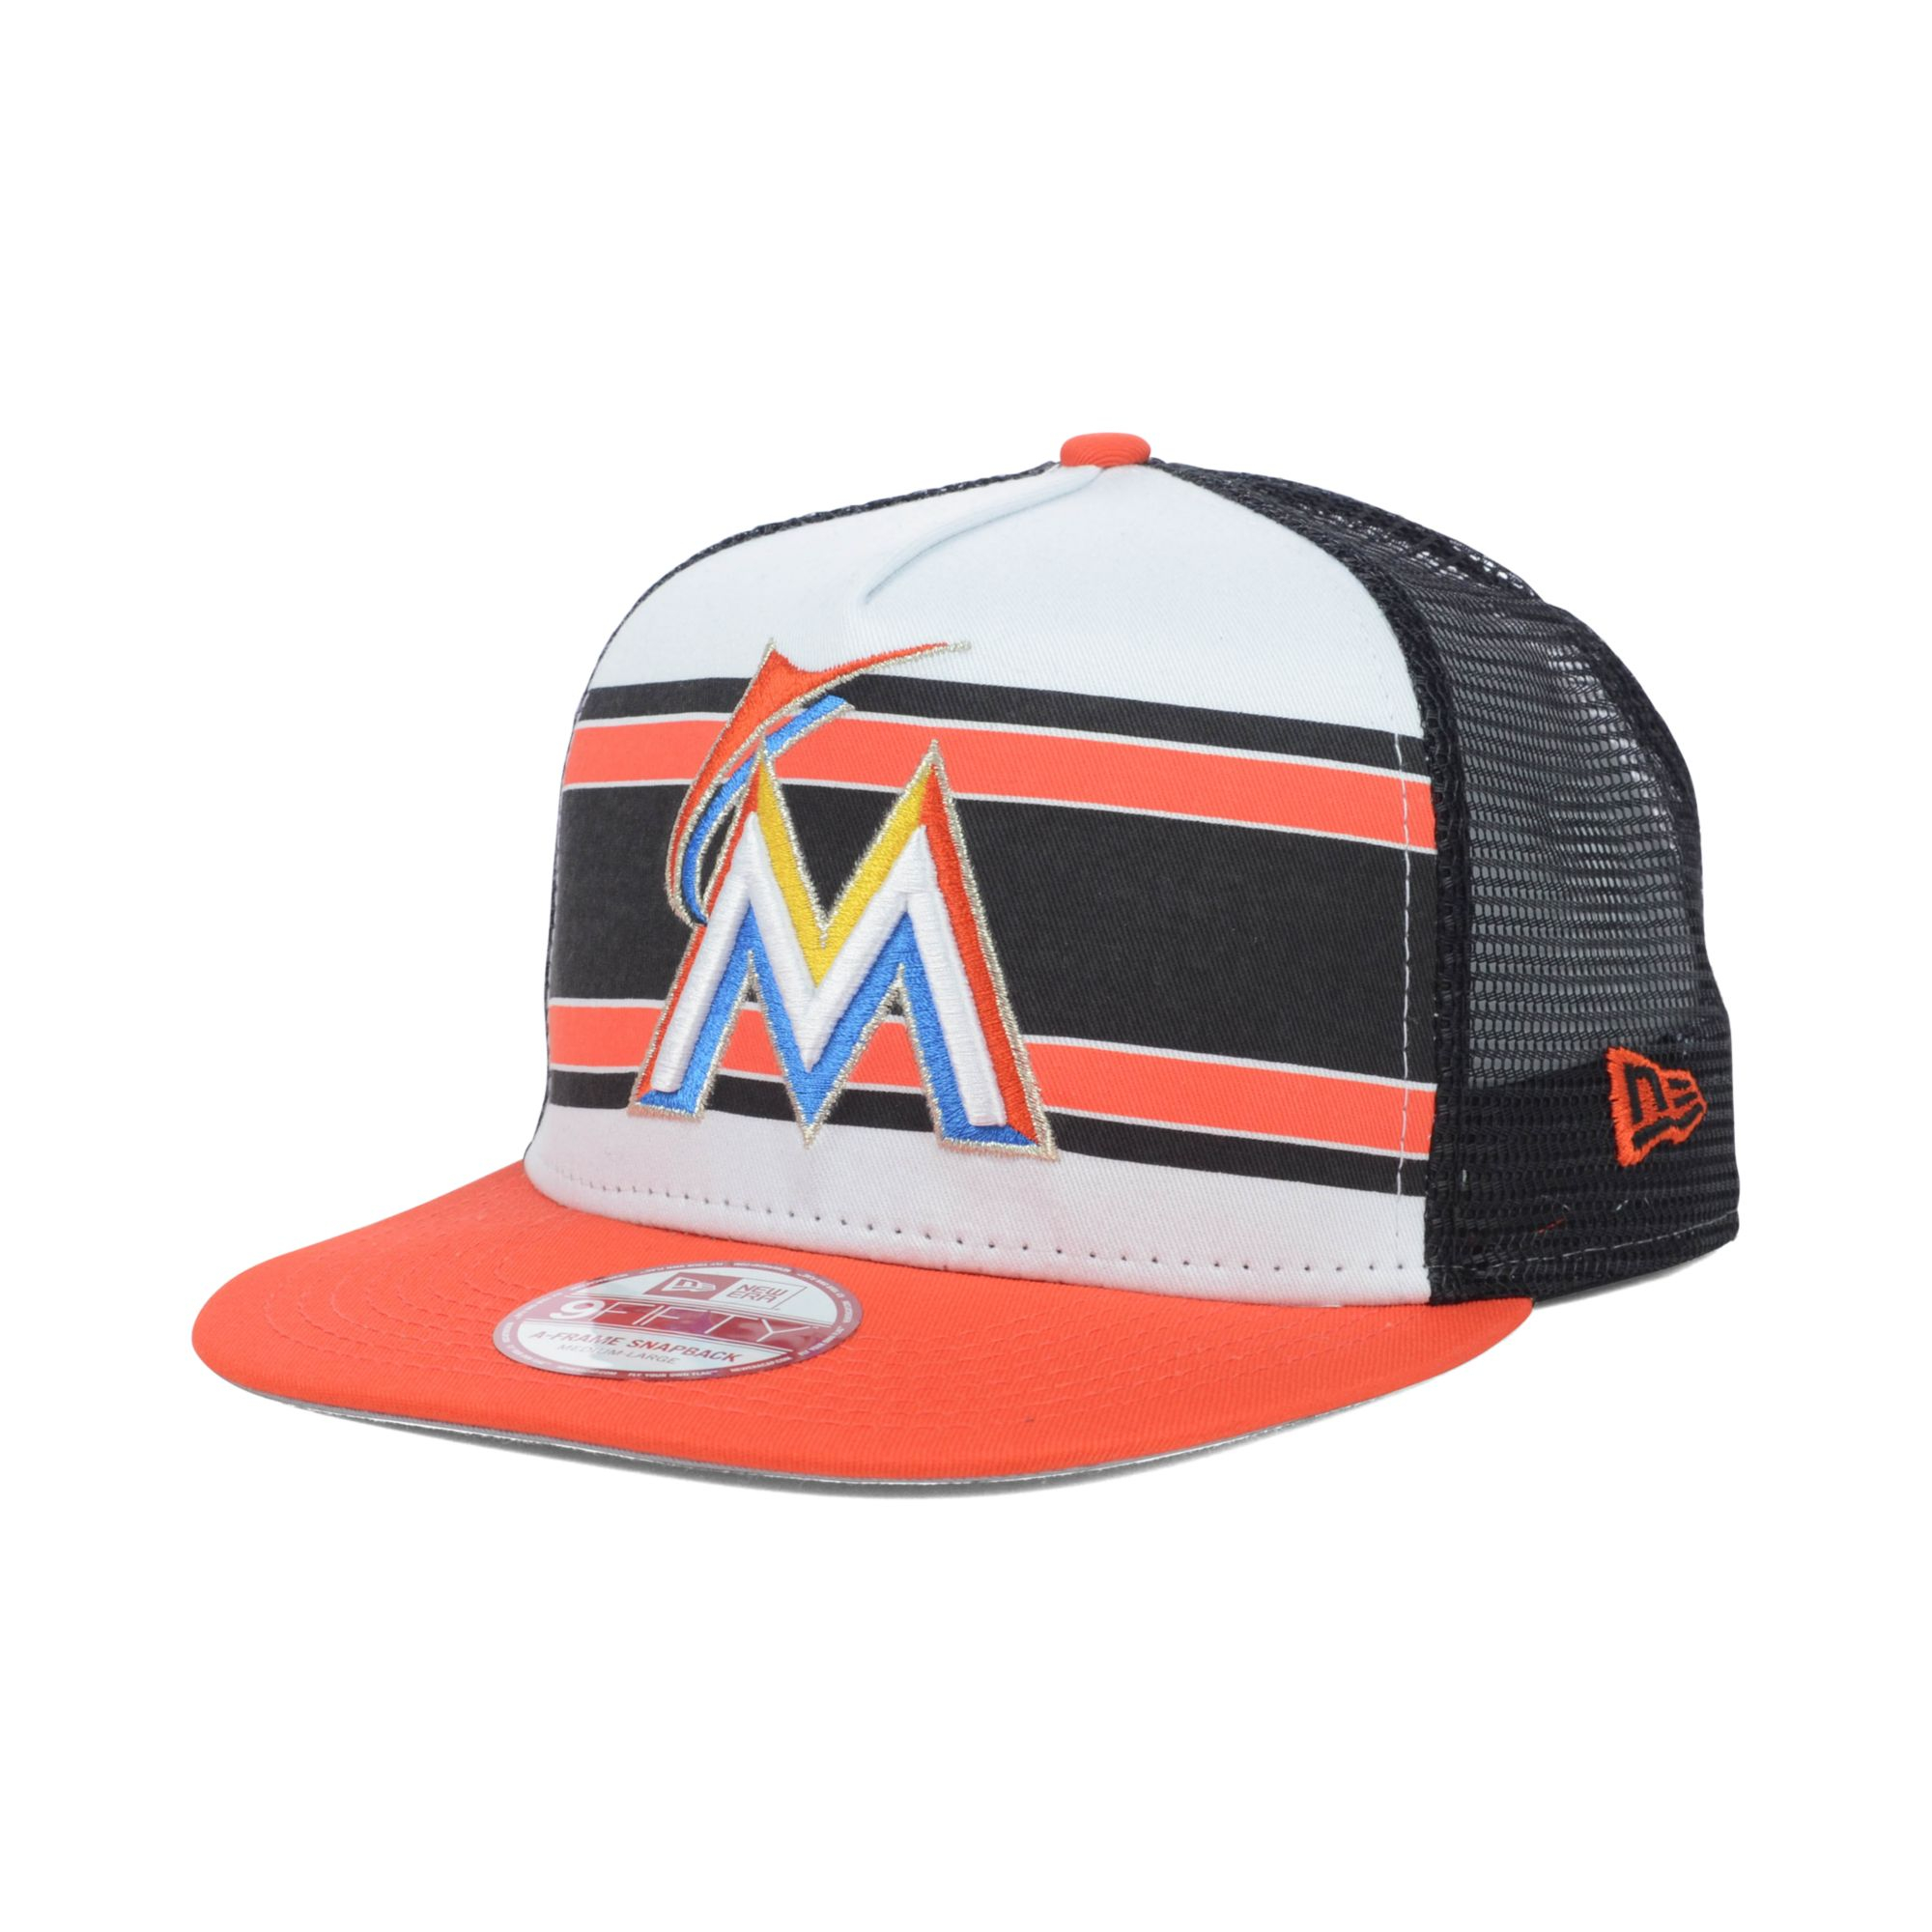 designer fashion 94e87 924f2 ... france lyst ktz miami marlins mlb band slap 9fifty snapback cap for men  faba1 1de6d